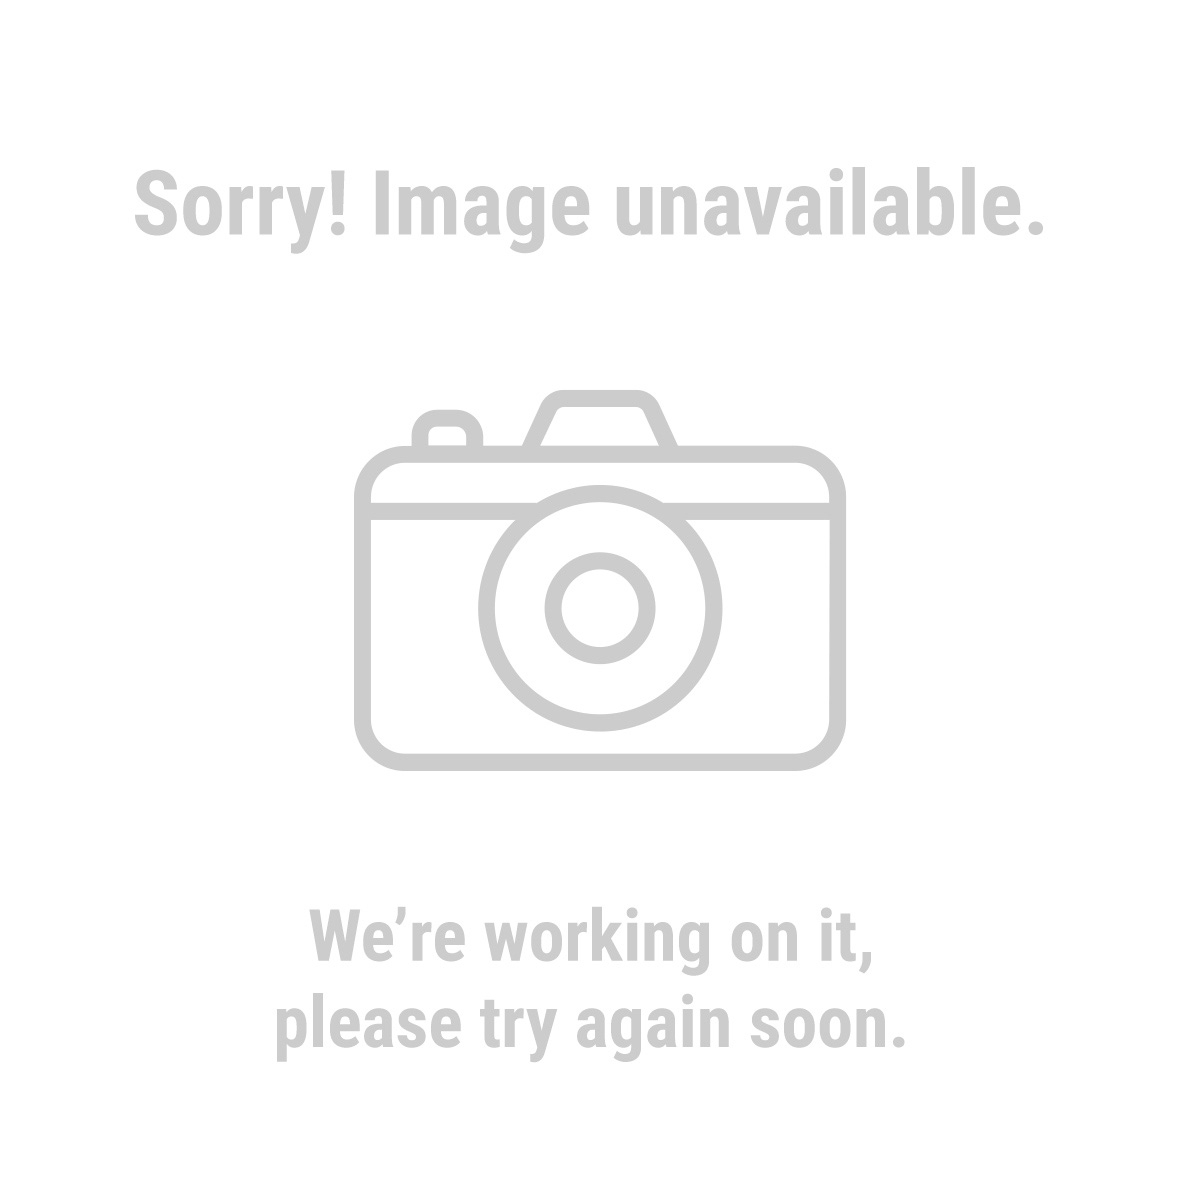 Warrior® 69977 5 Piece 4-1/2 in. 80 Grit Resin Fiber Sanding Discs